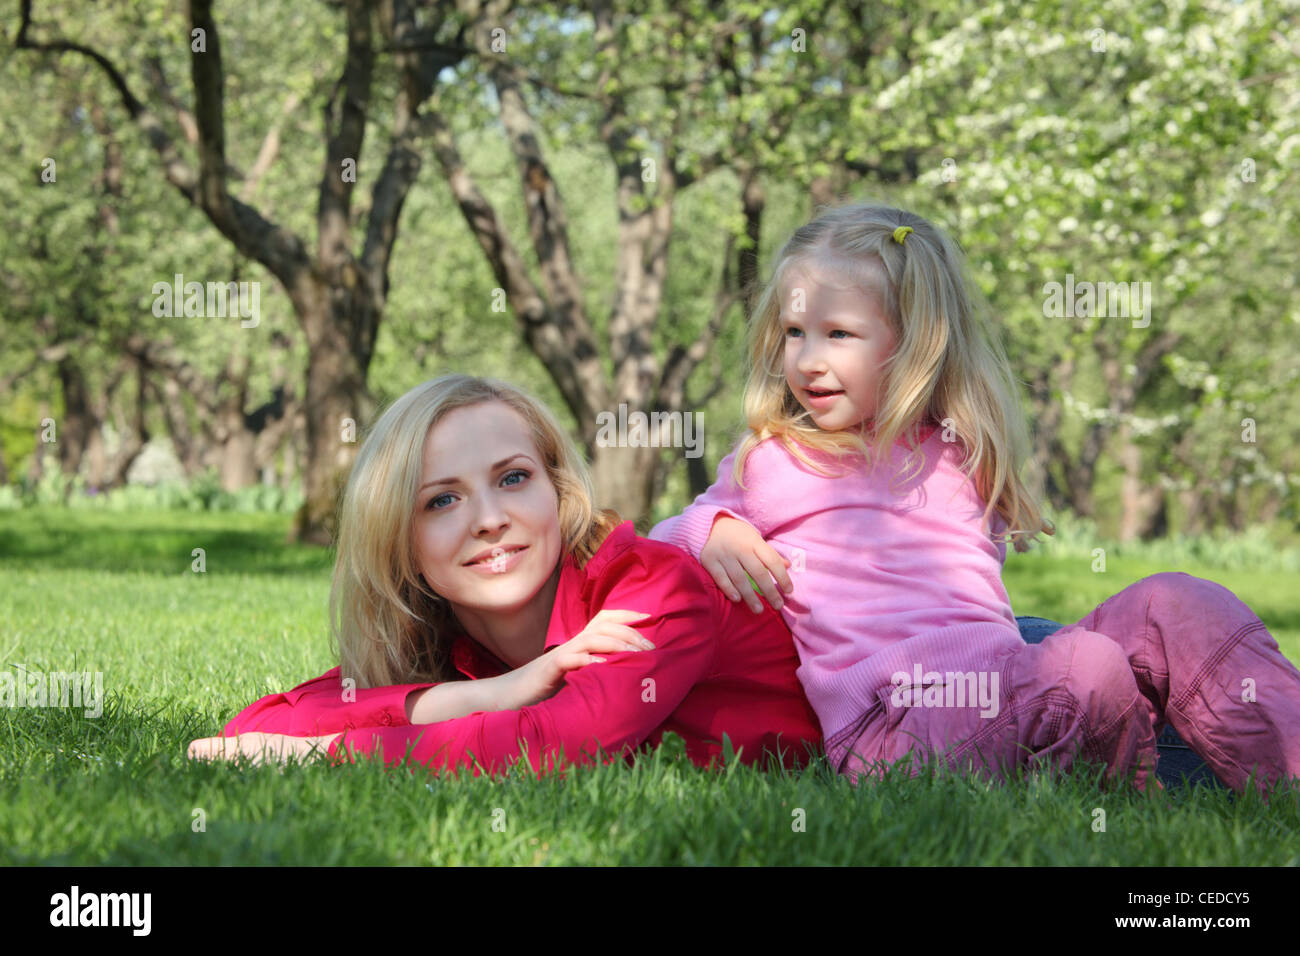 daughter has leant elbows on mother lying on grass in park - Stock Image